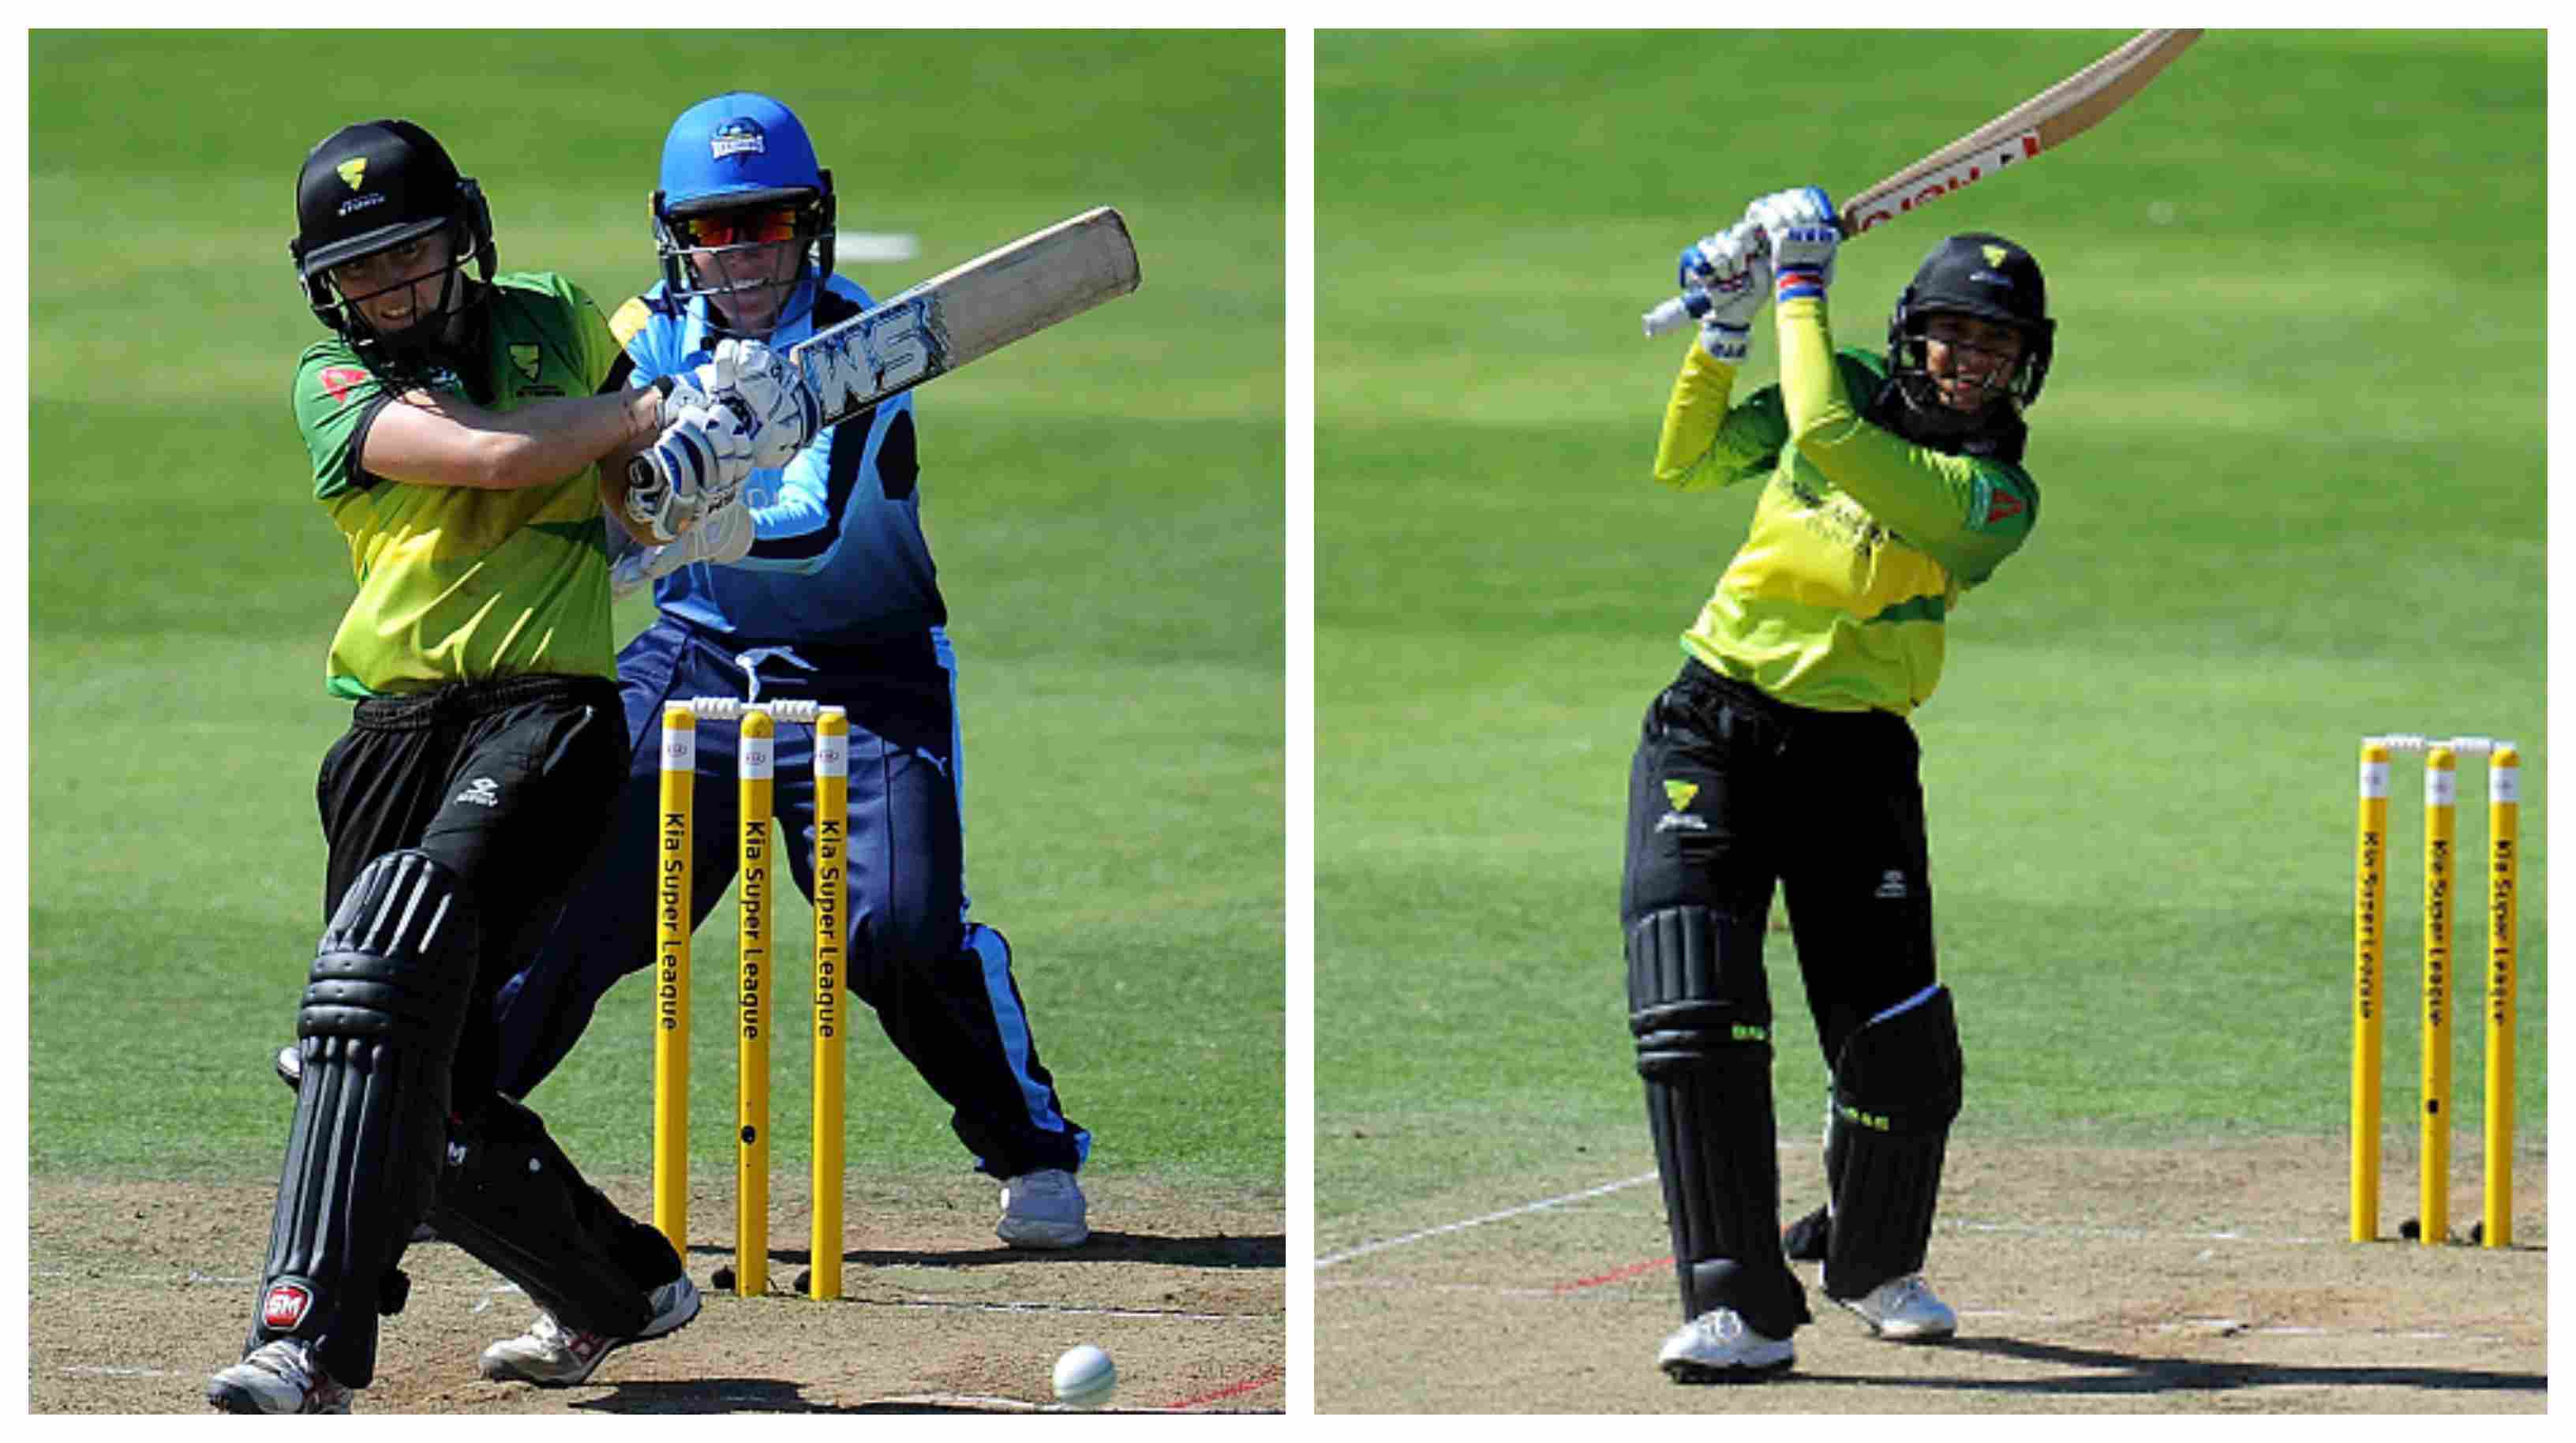 Western Storm's Heather Knight and Smriti Mandhana put on a batting exhibition against Yorkshire Diamonds | Getty